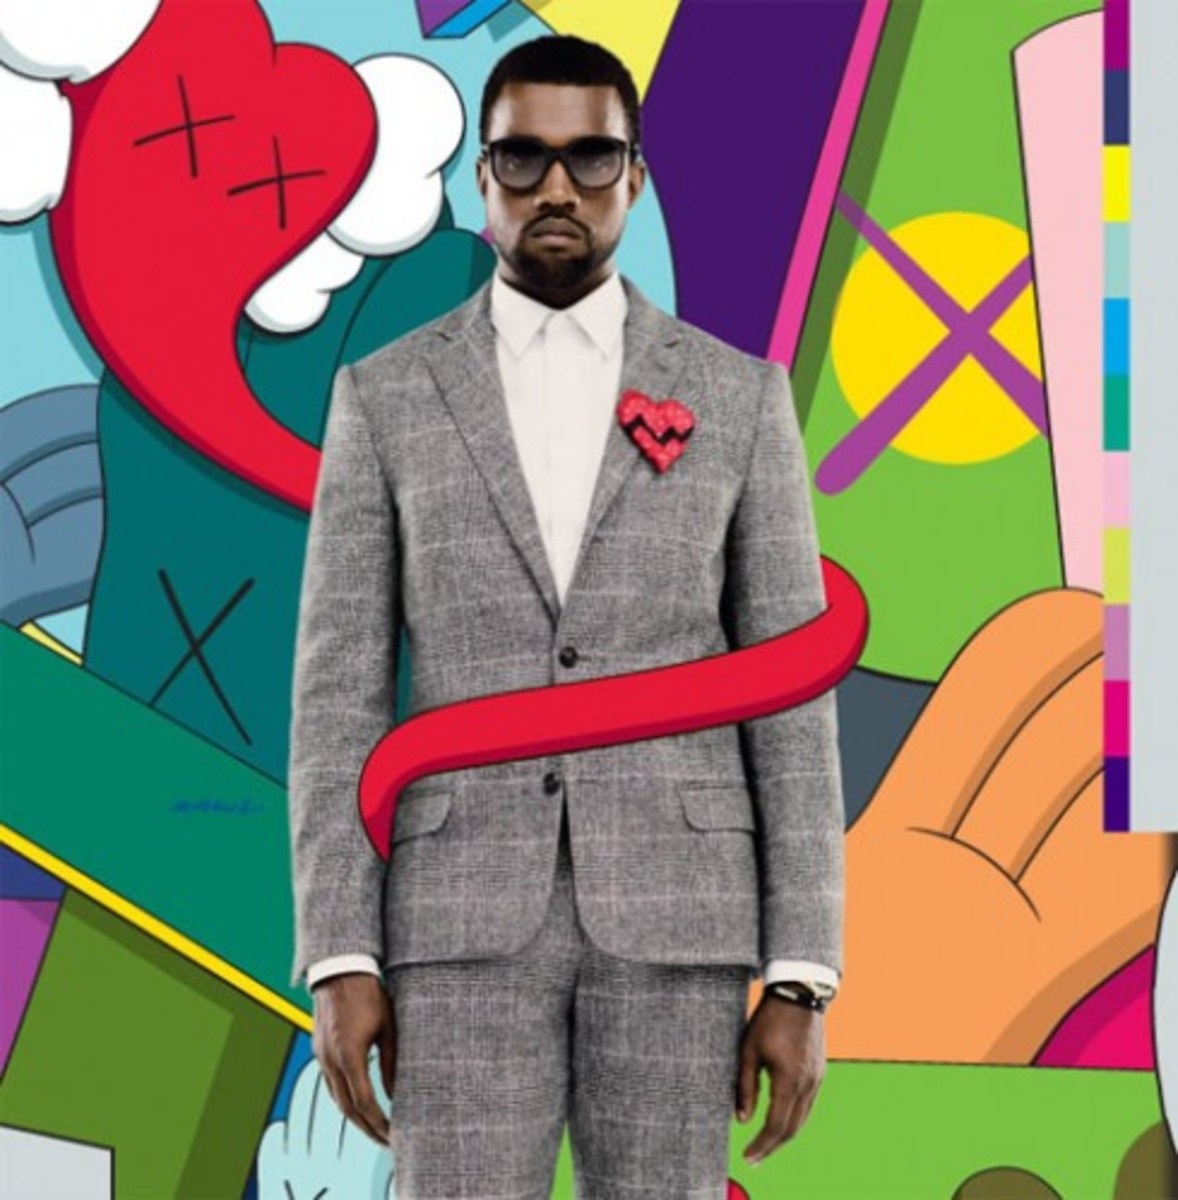 Kanye West x KAWS - 808's and Heartbreak Cover - 1